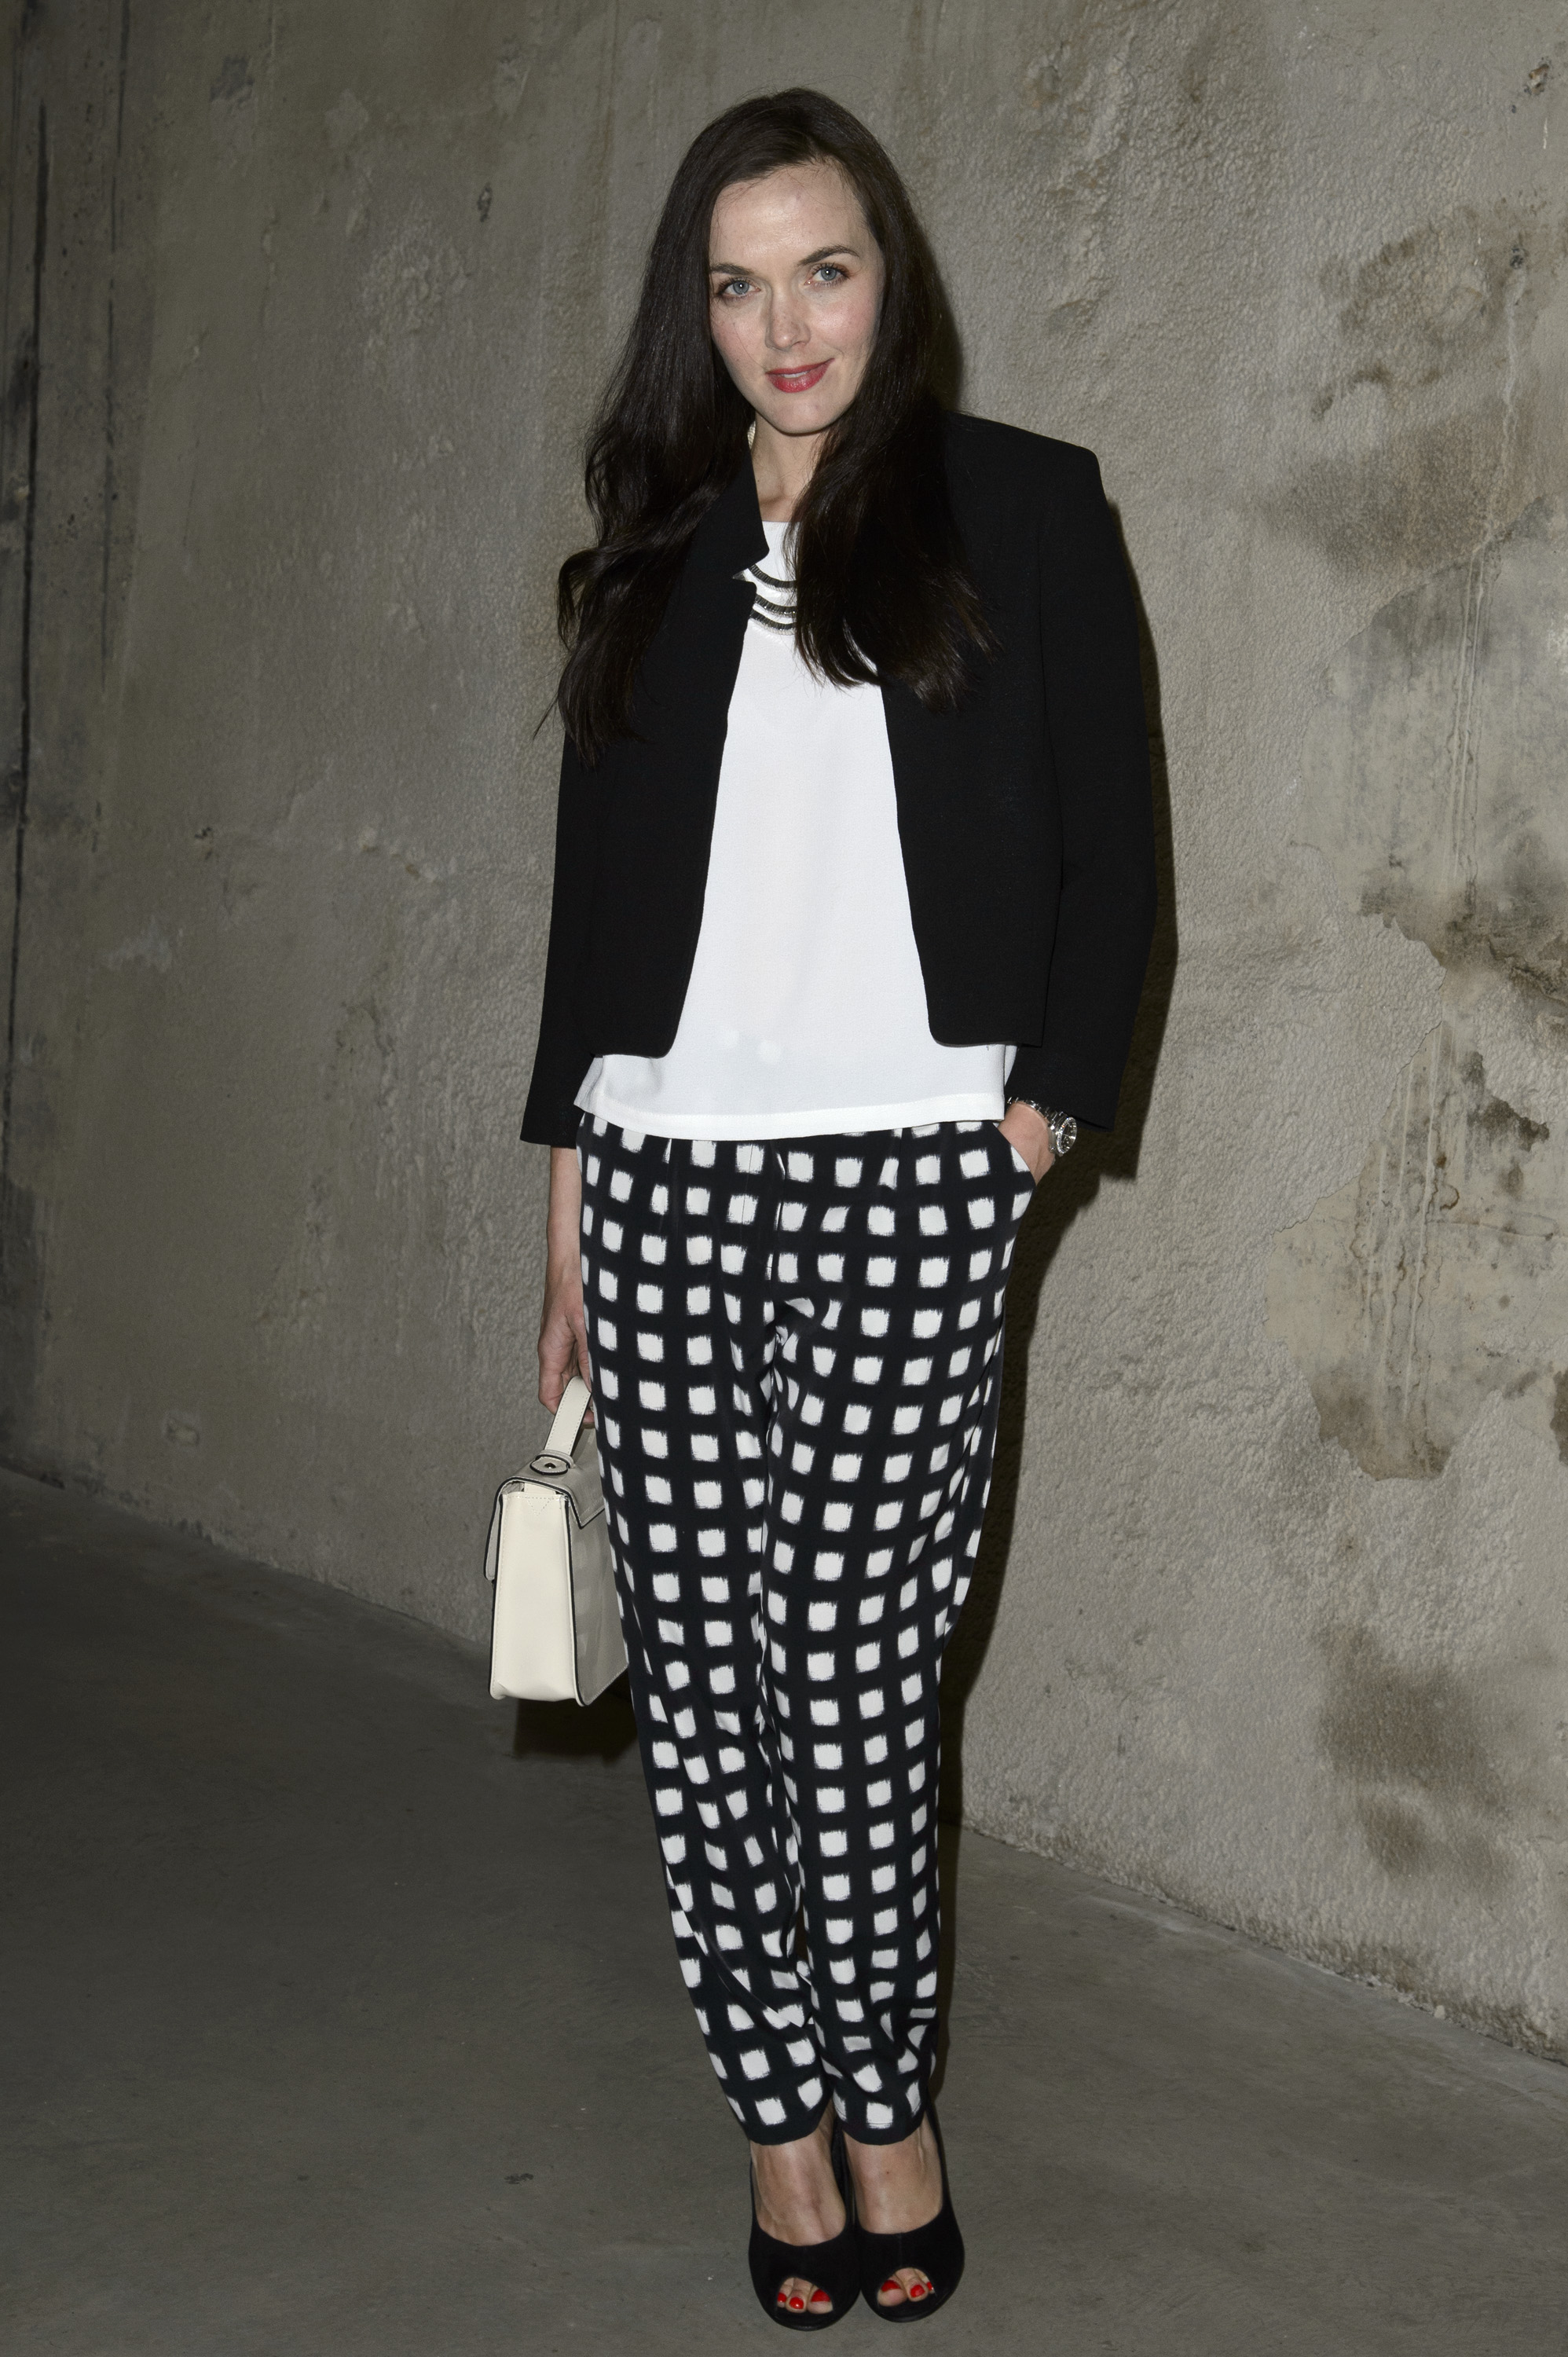 Victoria Pendleton at the Topshop Unique Fall 2013 show in London.